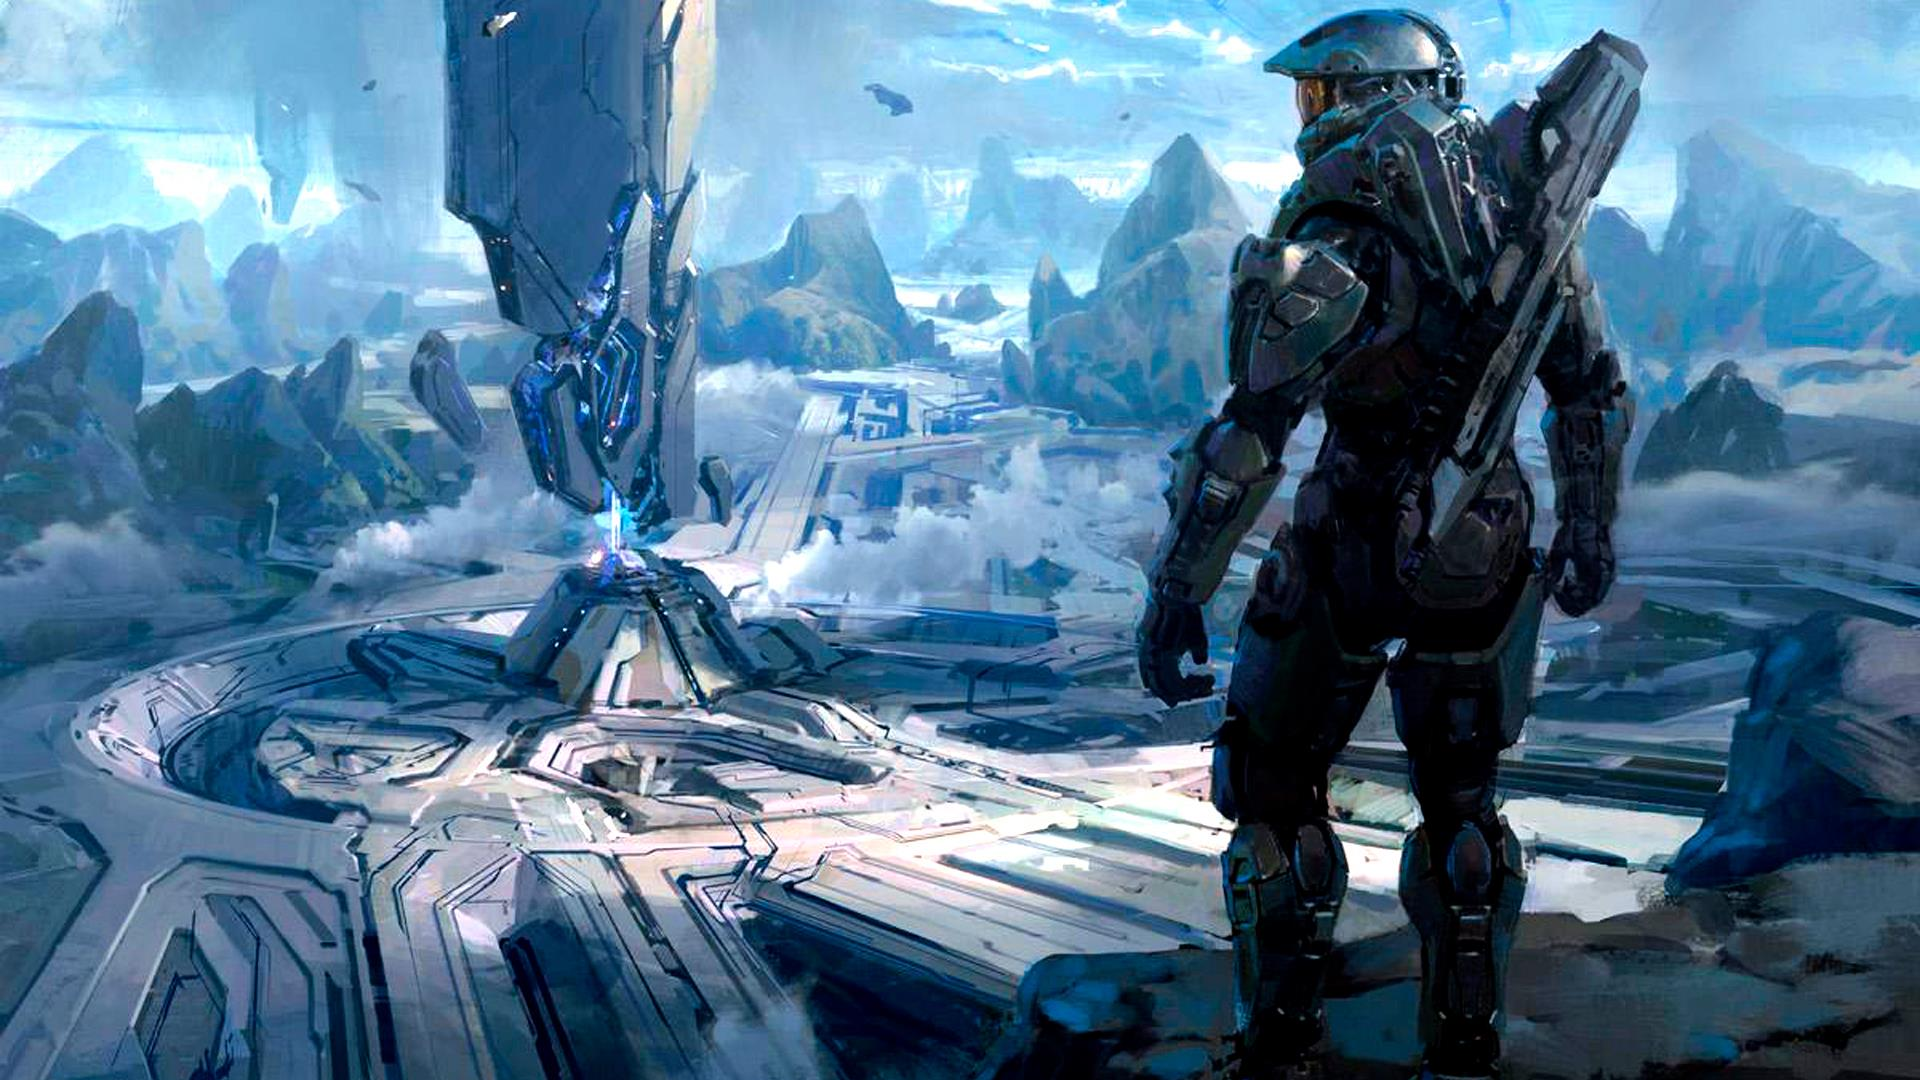 halo wallpaper, wallpaper halo